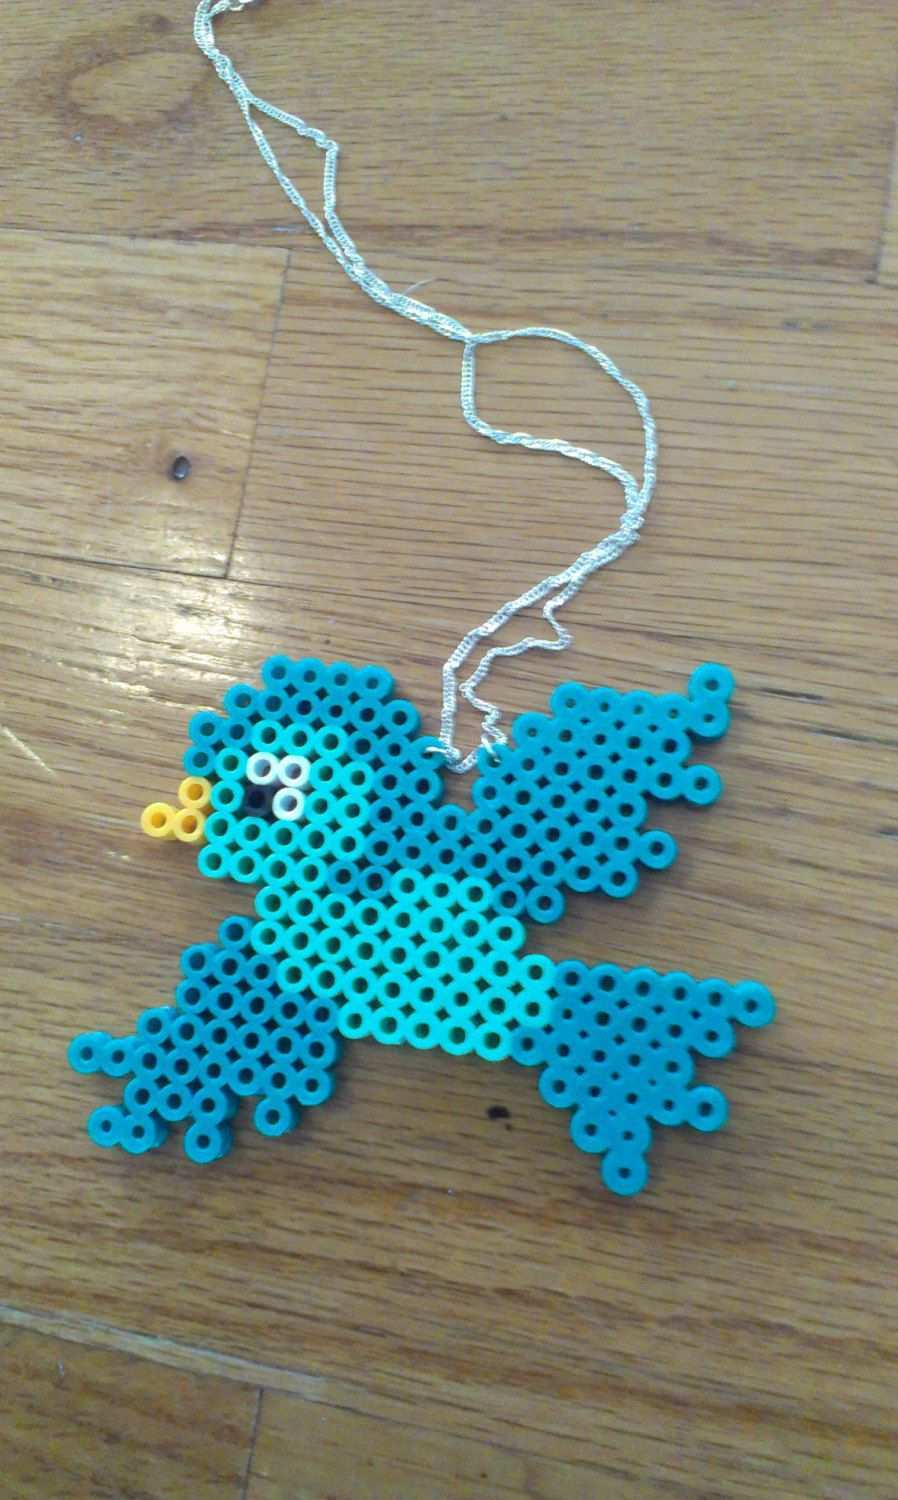 Pin By Astrid Schurig On Diy Crafts Hama Beads Patterns Perler Bead Art Diy Perler Beads